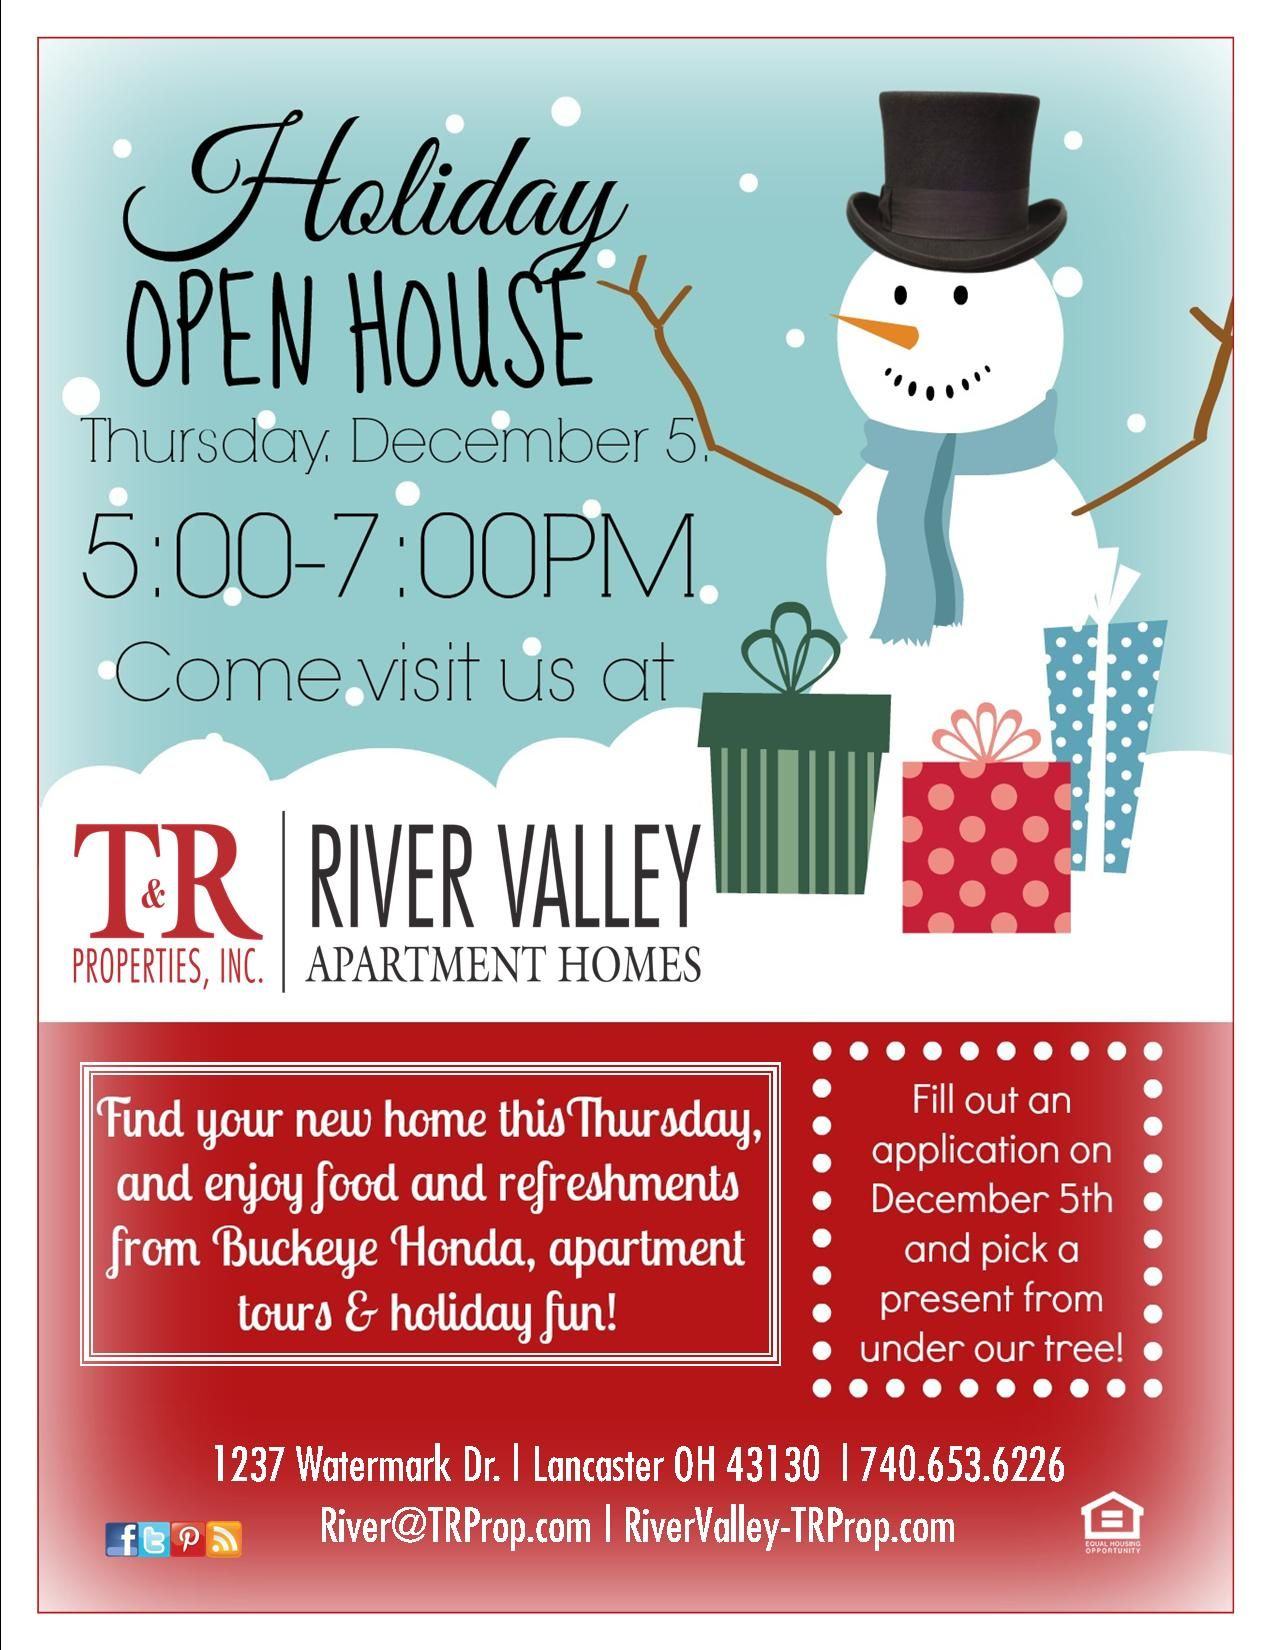 River Valley Apartment Homes In Lancaster Oh Http Www Rivervalley Trprop Com Holiday Flyer Party Open House Student House Senior Living